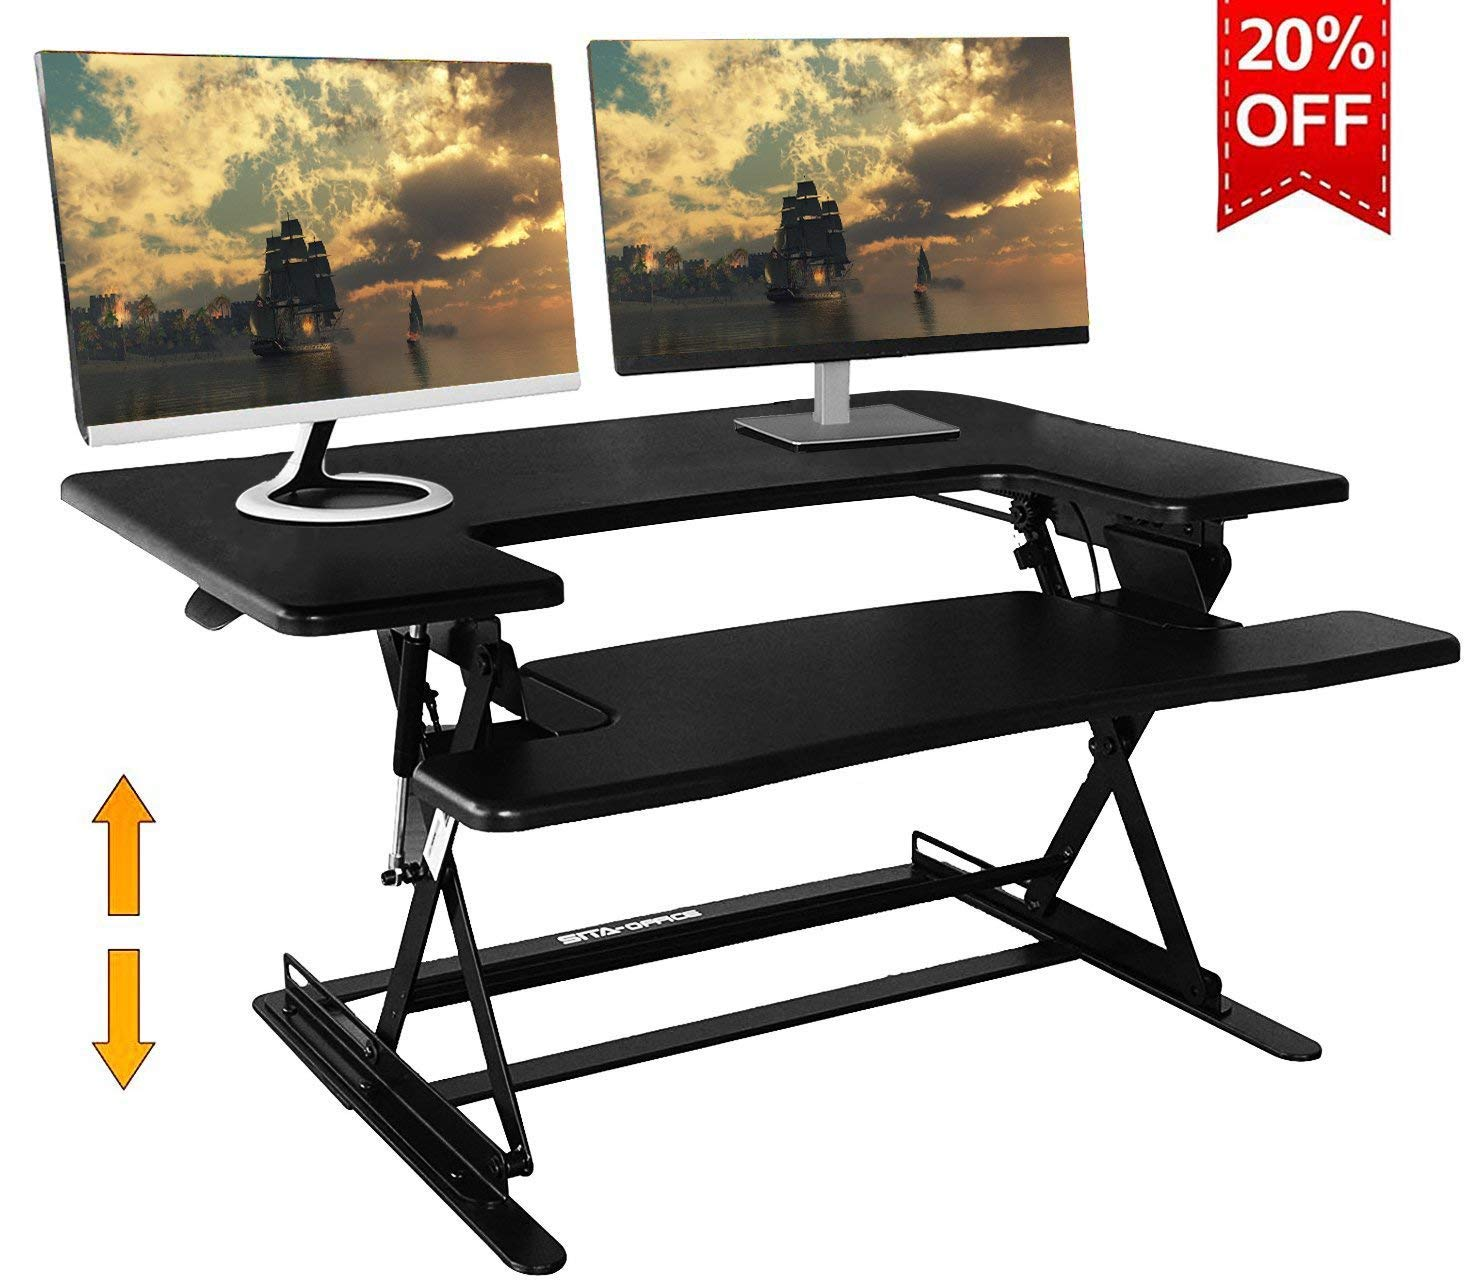 MIHI 36-Inch Standing Desk Adjustable Monitor Riser